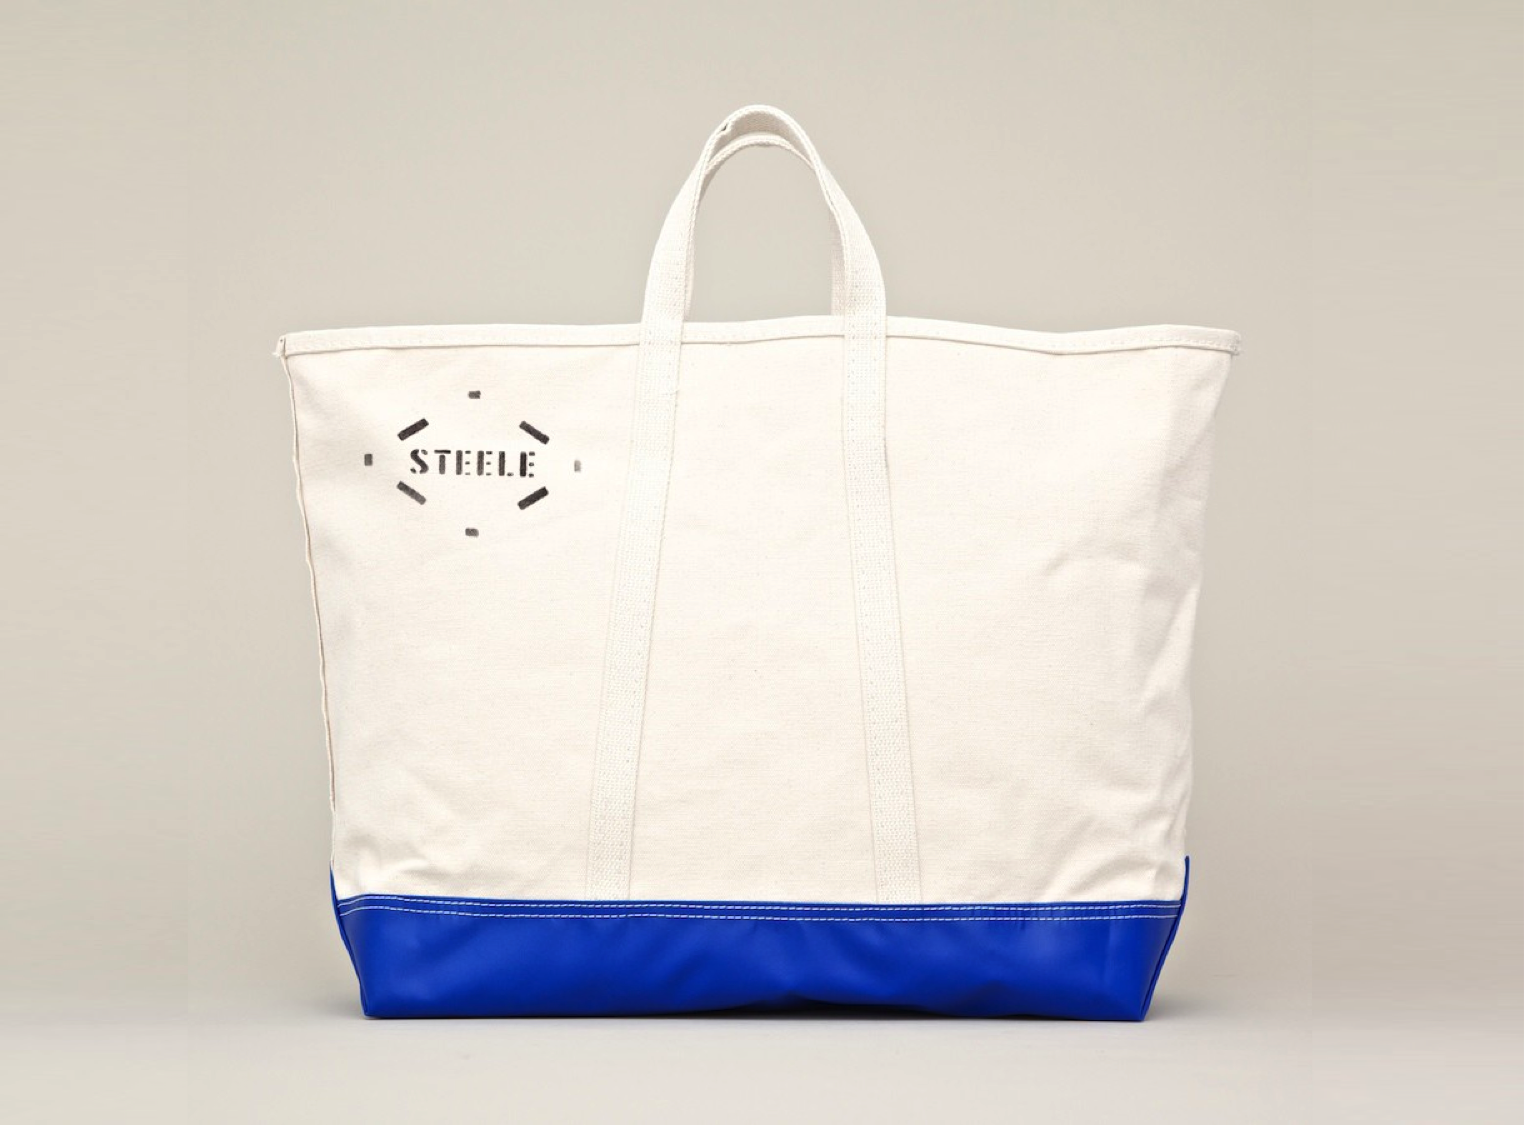 #188 Steele Canvas Tote Bag